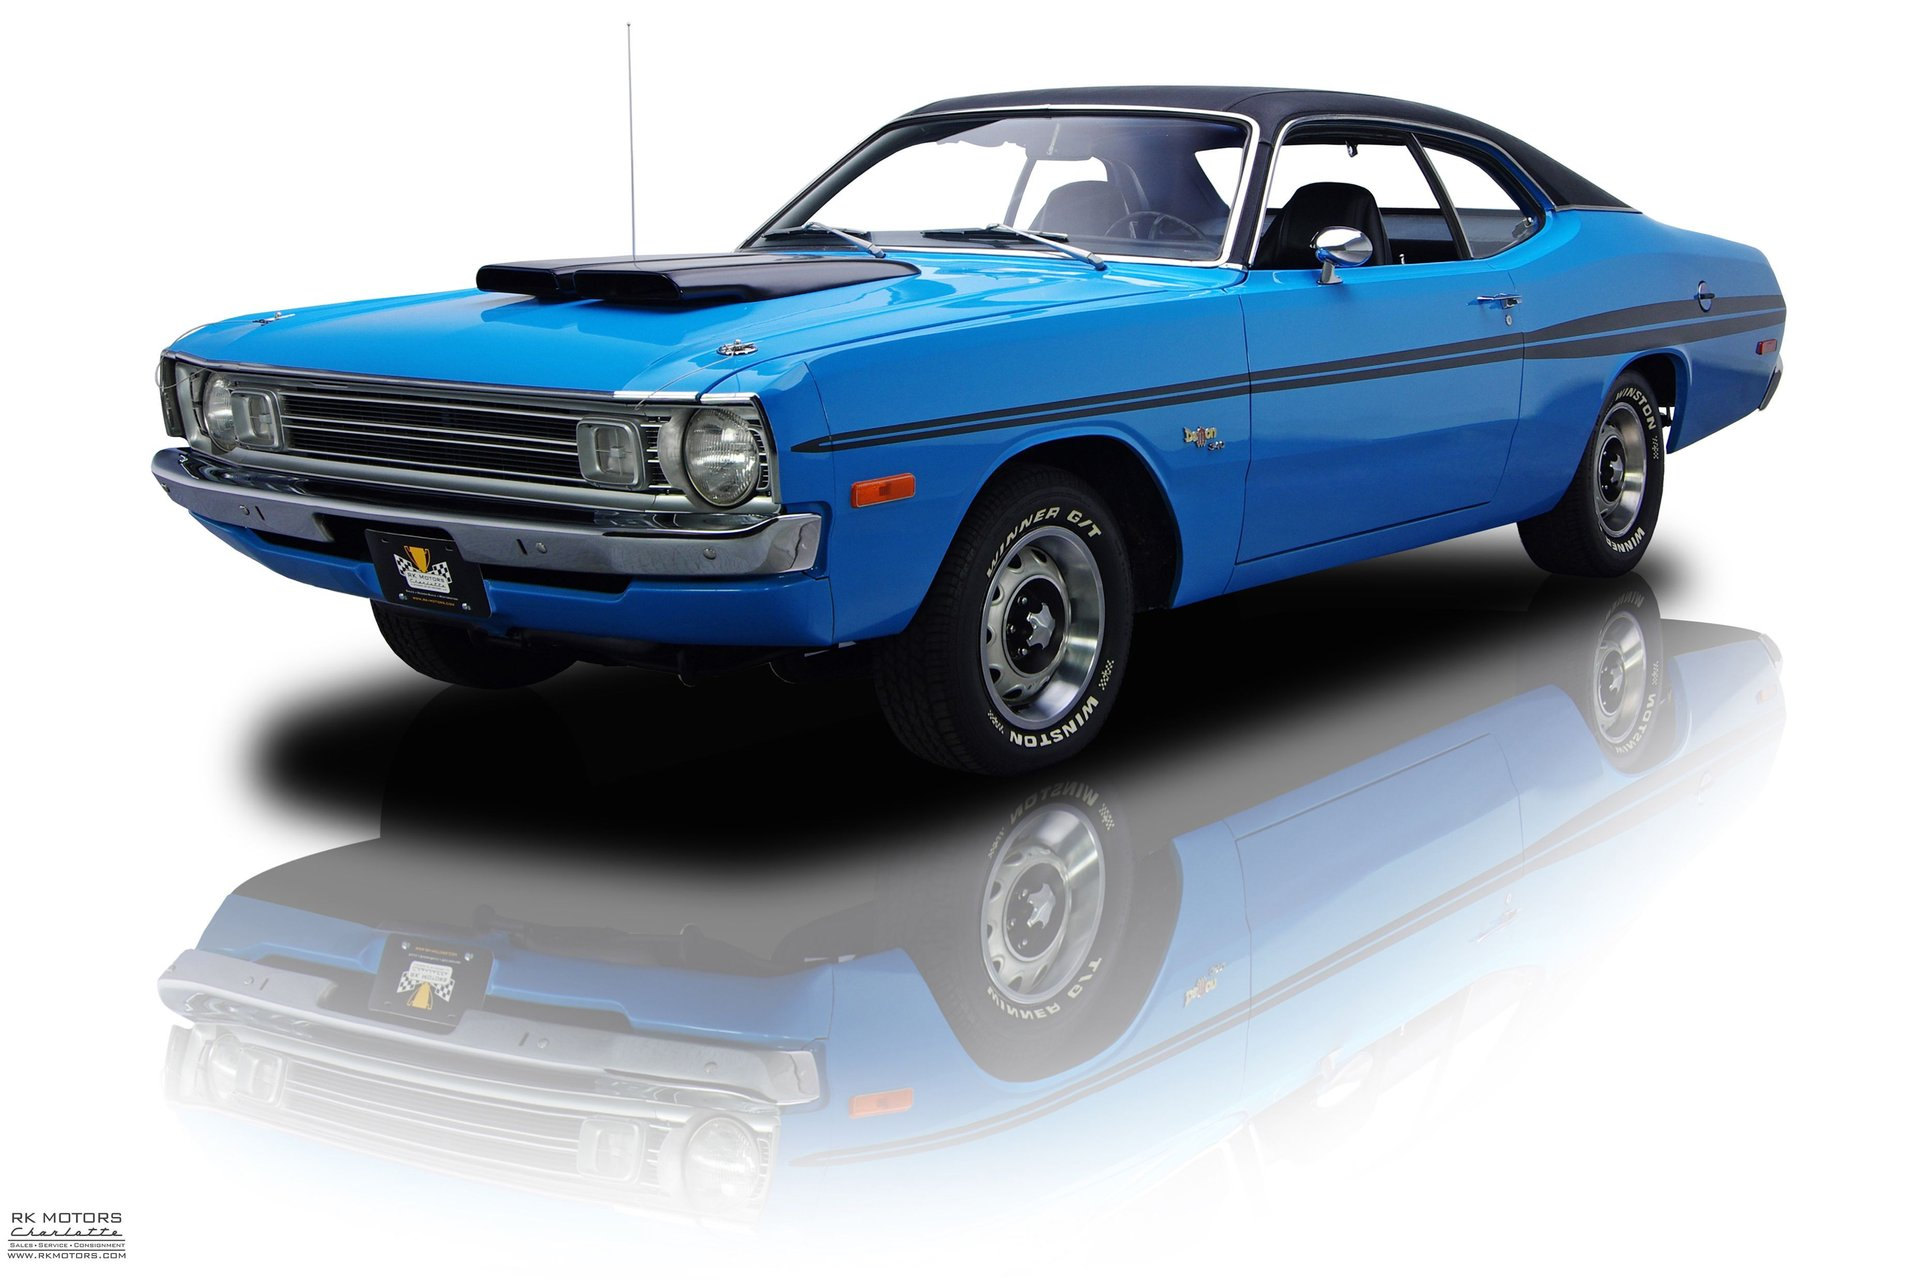 132620 1972 Dodge Demon Rk Motors Classic Cars And Muscle Cars For